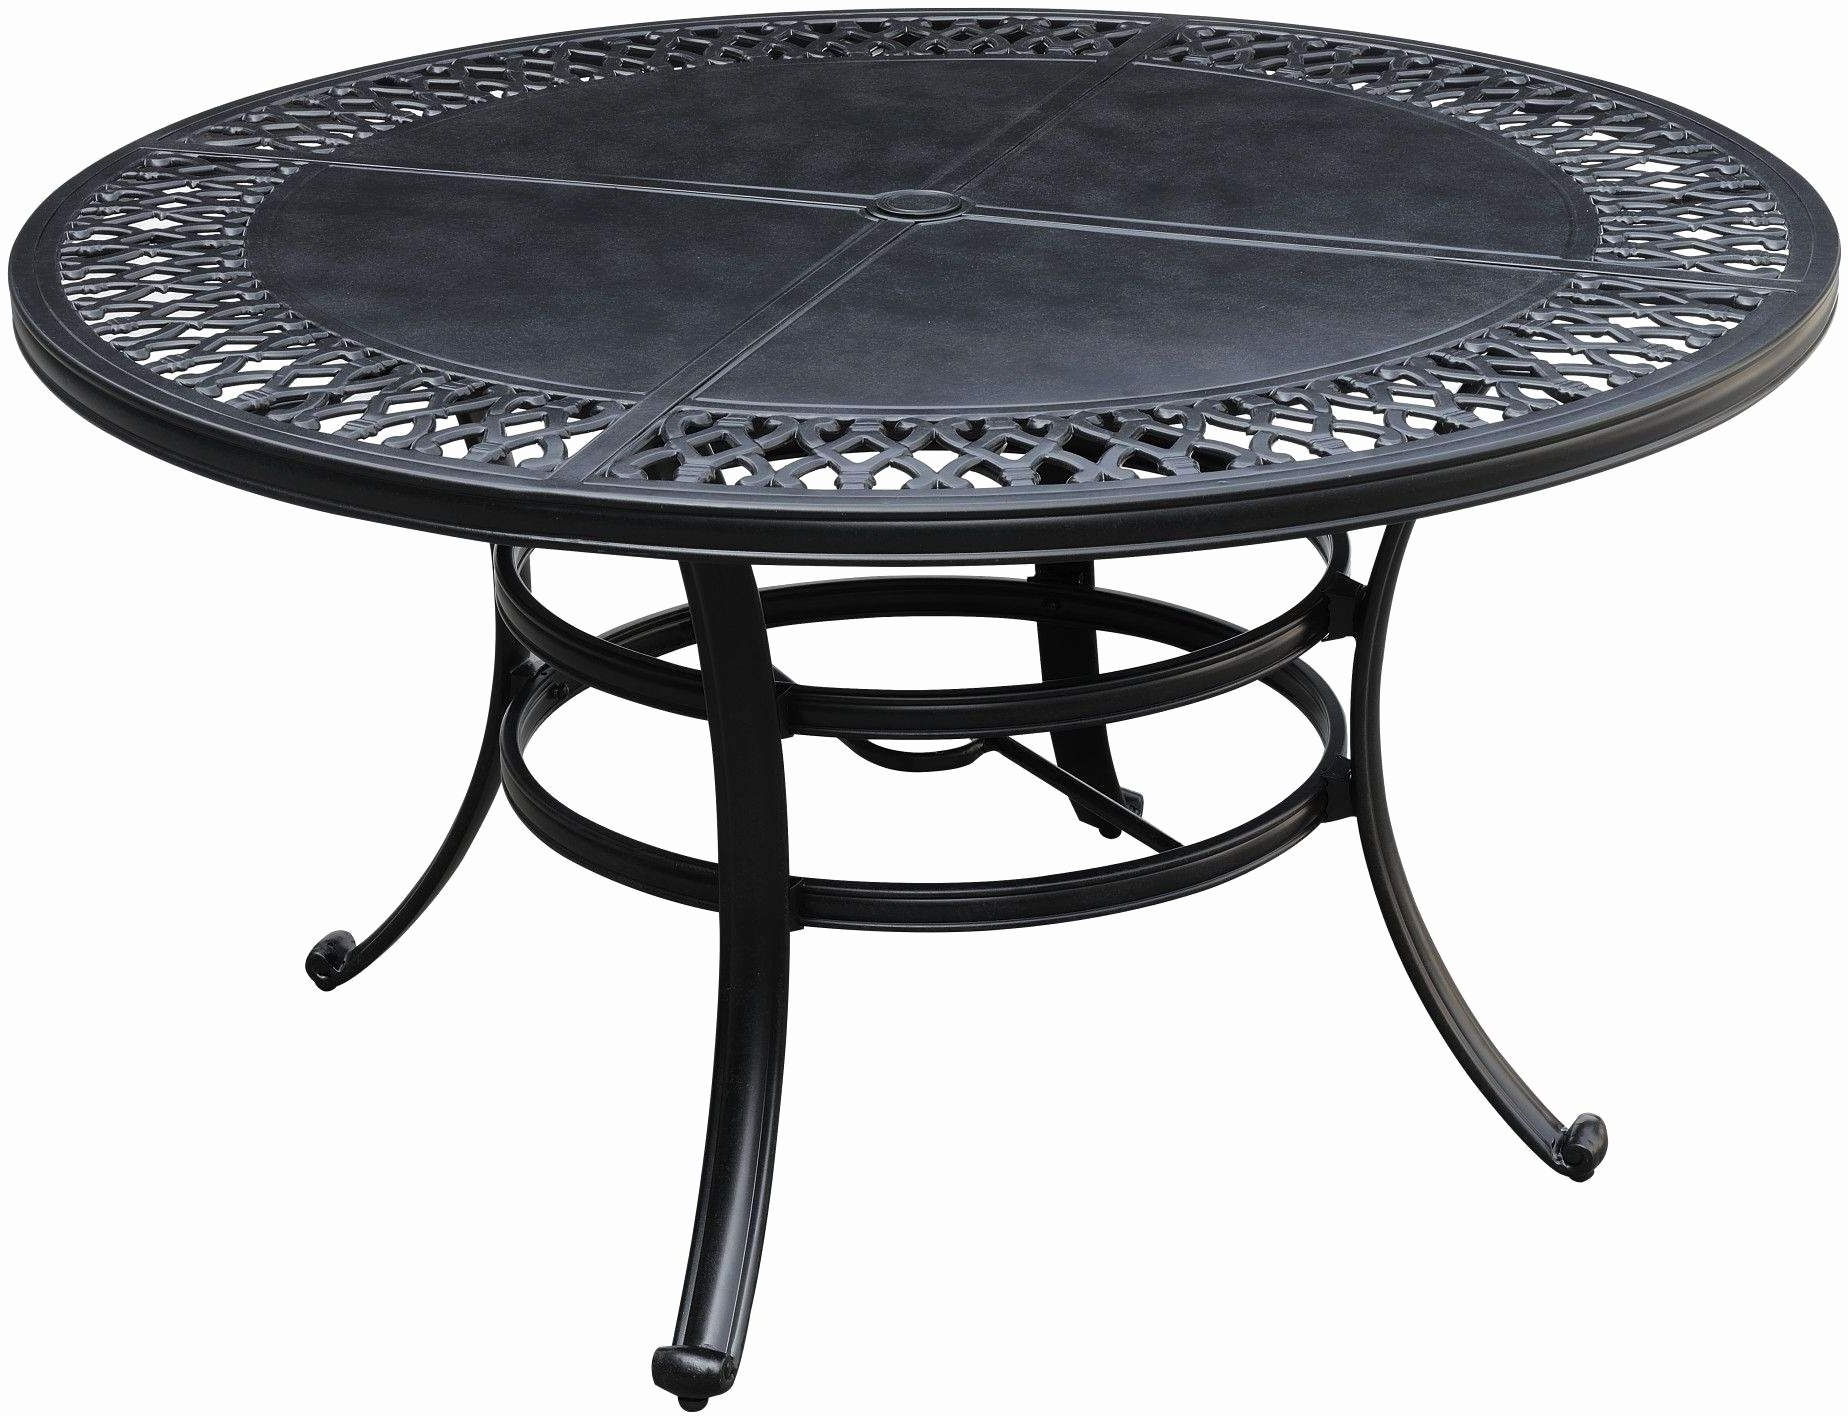 Patio Umbrella Stand Side Tables Regarding Famous Mosaic Outdoor Coffee Table Inspirational Mosaic Dining Table Patio (Gallery 20 of 20)